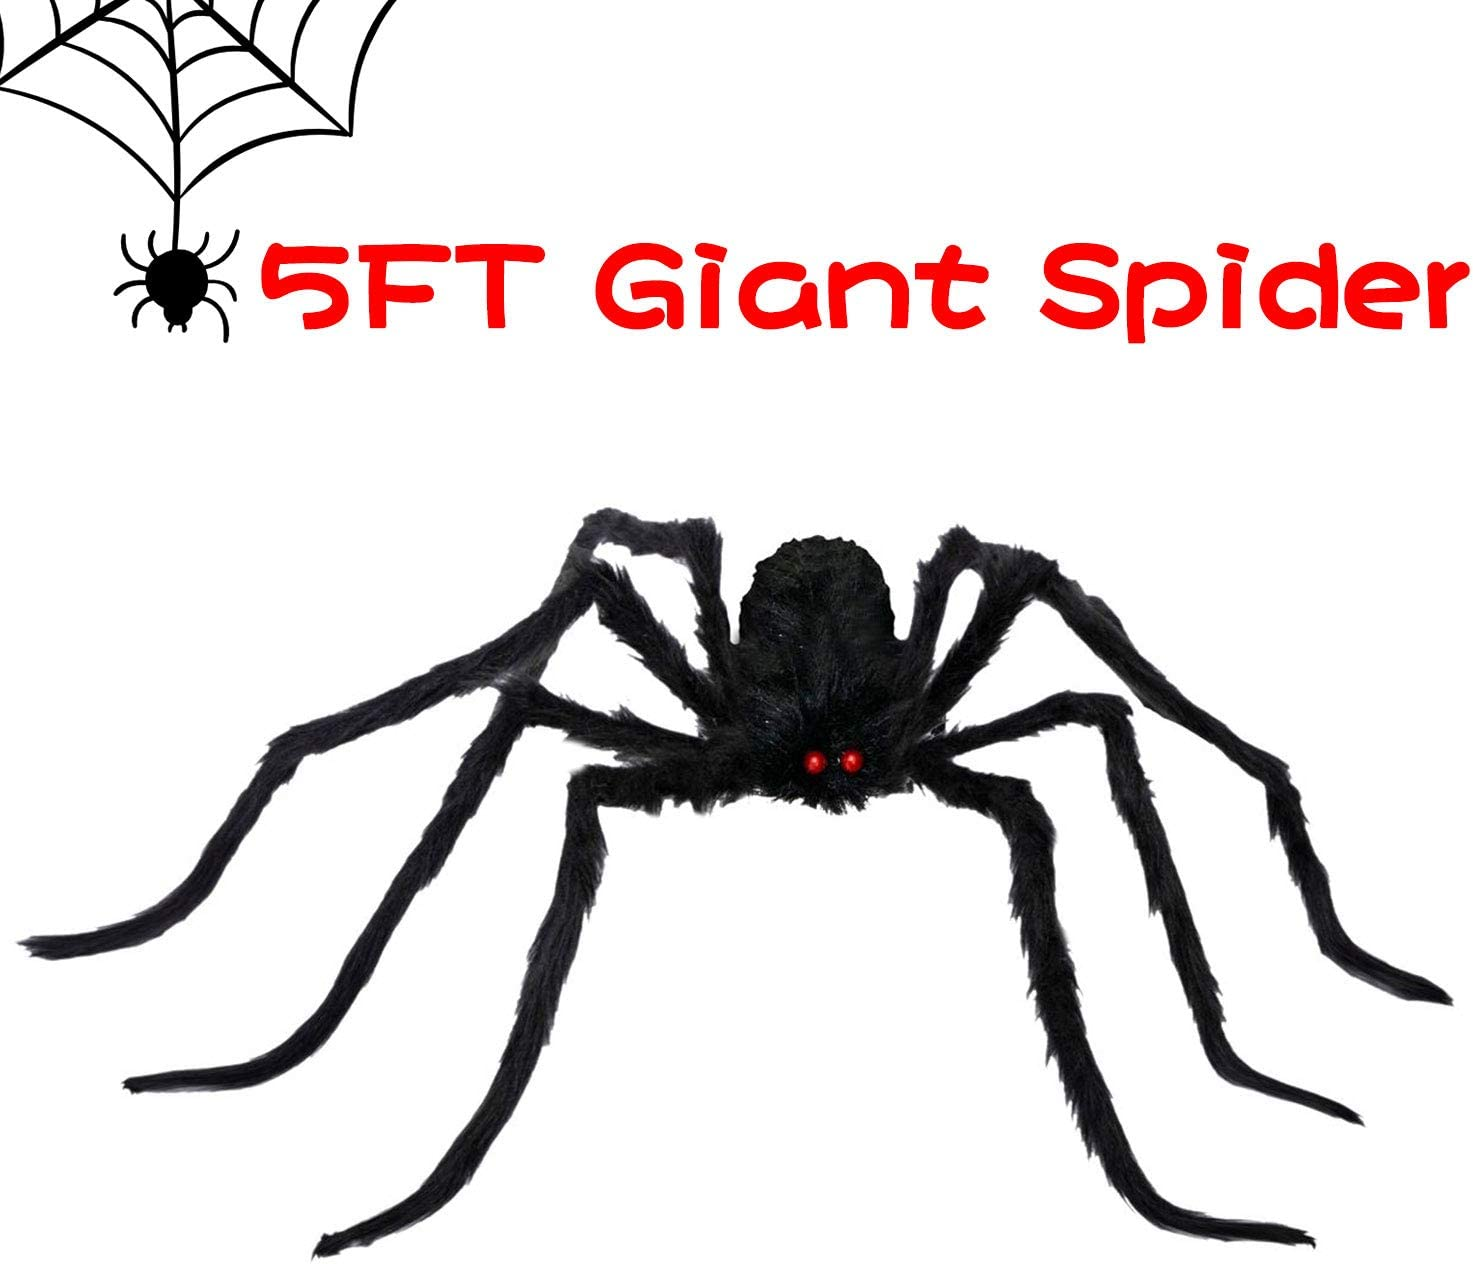 ALLADINBOX Halloween Hairy Scary Virtual Realistic Posable Spider Black - Indoor Outdoor Yard Furry Giant Haunted House Party Decor Supplies, 60''